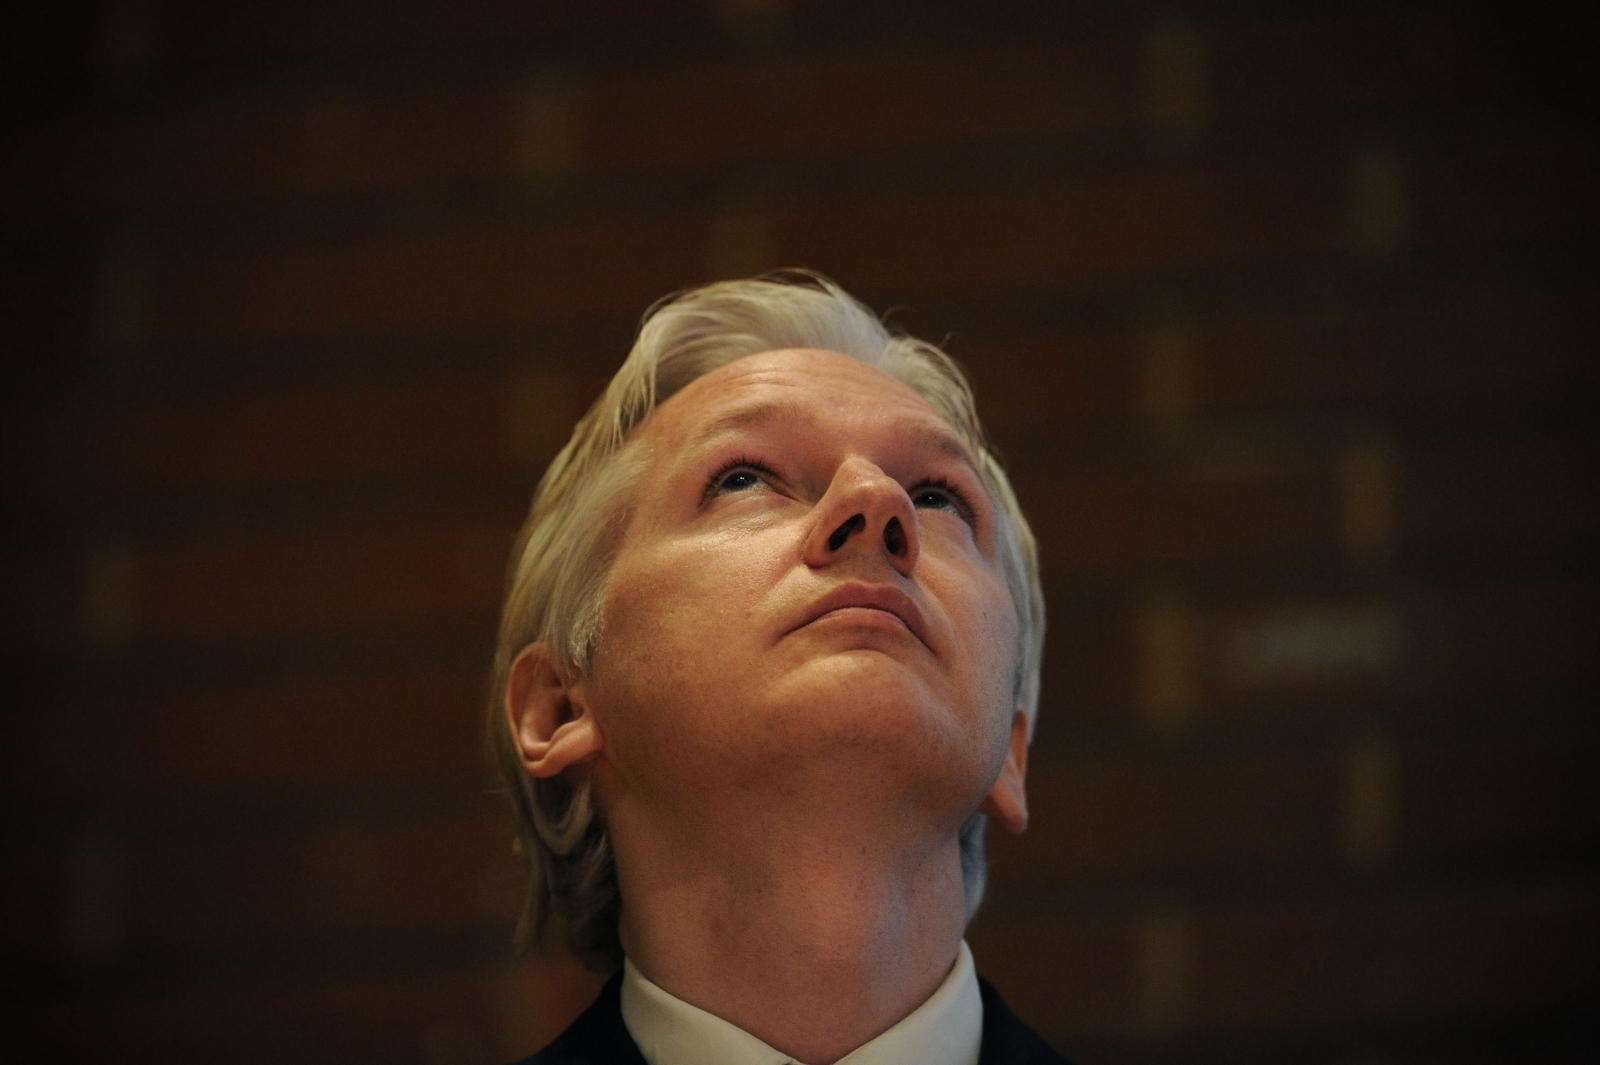 Julian Assange Gets Ecuador Citizenship After 5 Years of Living in Embassy